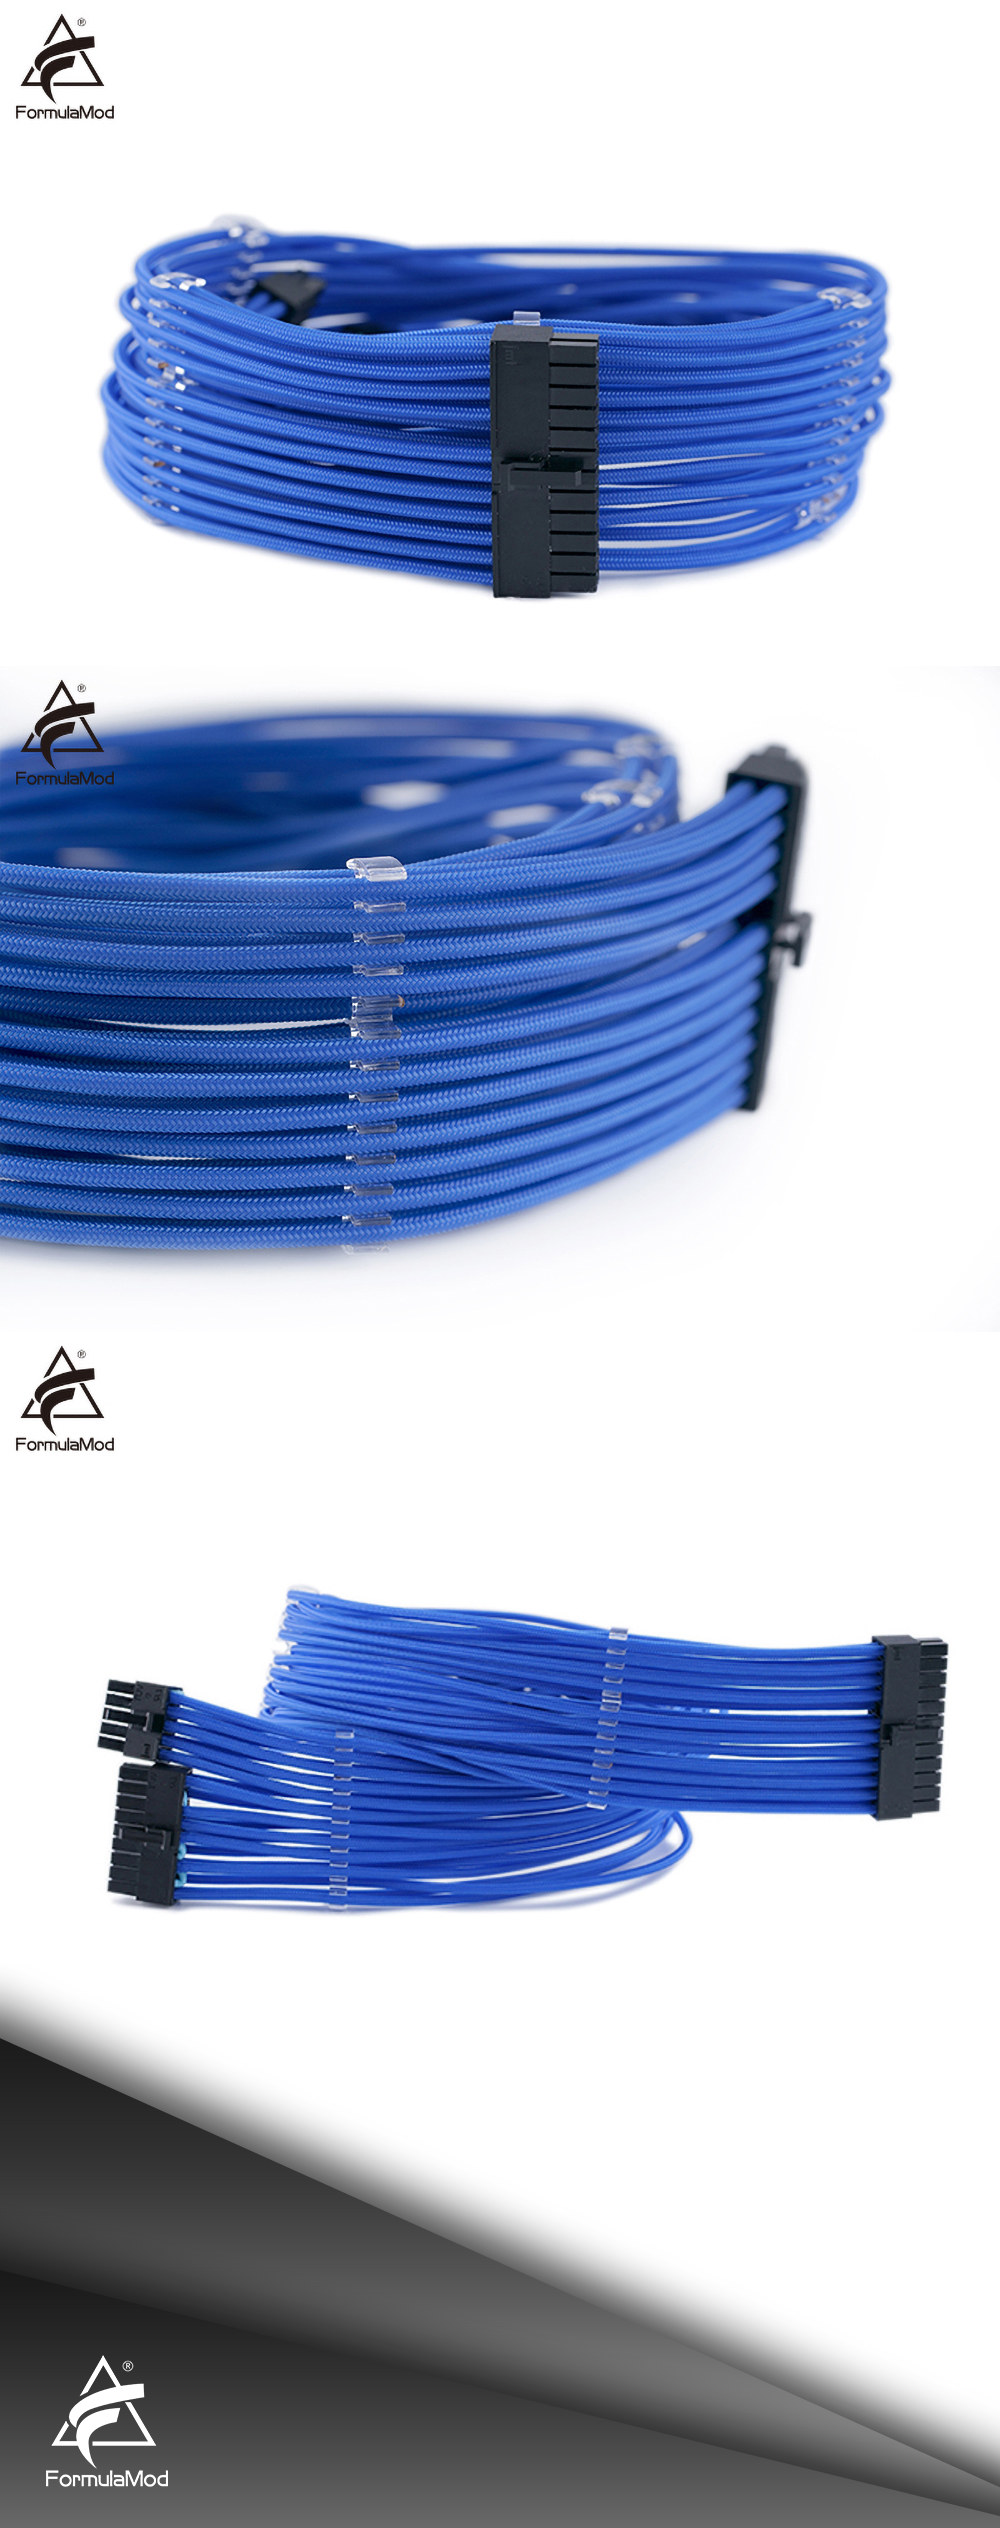 FormulaMod EVGA Fully Modular PSU Cable Kit, 18AWG Sleeved, Kit For EVGA Modular PSU, Fm-BZXZ [Please check compatibility]